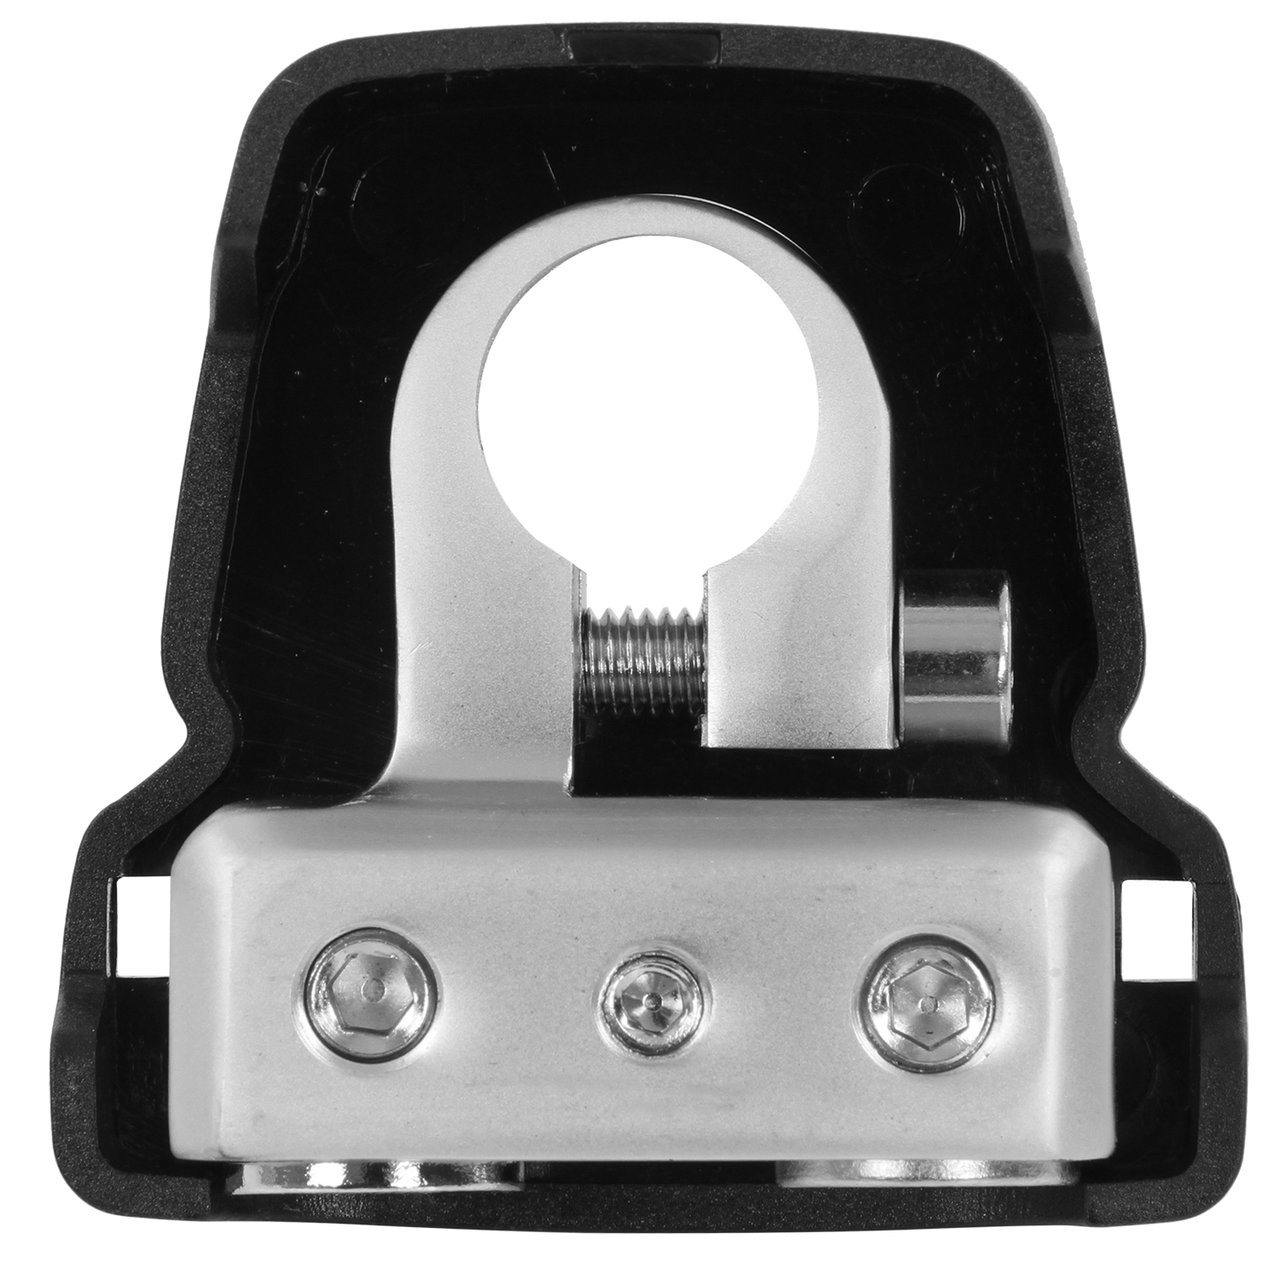 NVX XBTPN04 BATTERY TERMINAL WITH 3 OUTPUTS